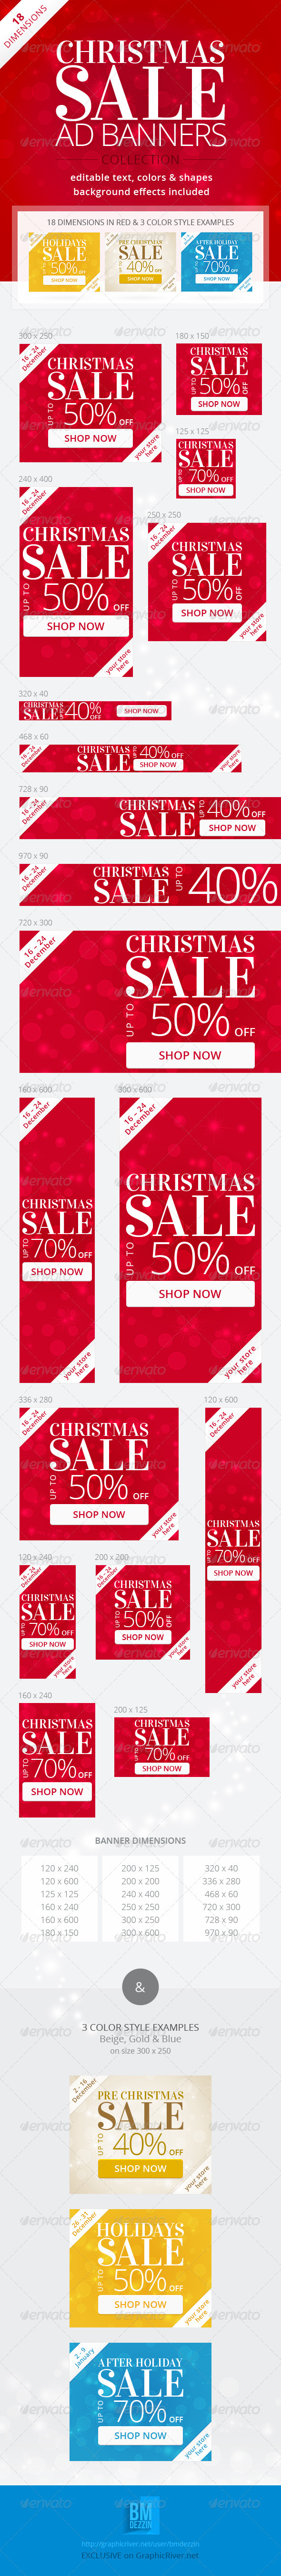 GraphicRiver Christmas Sale Web Ad Banners 6136335